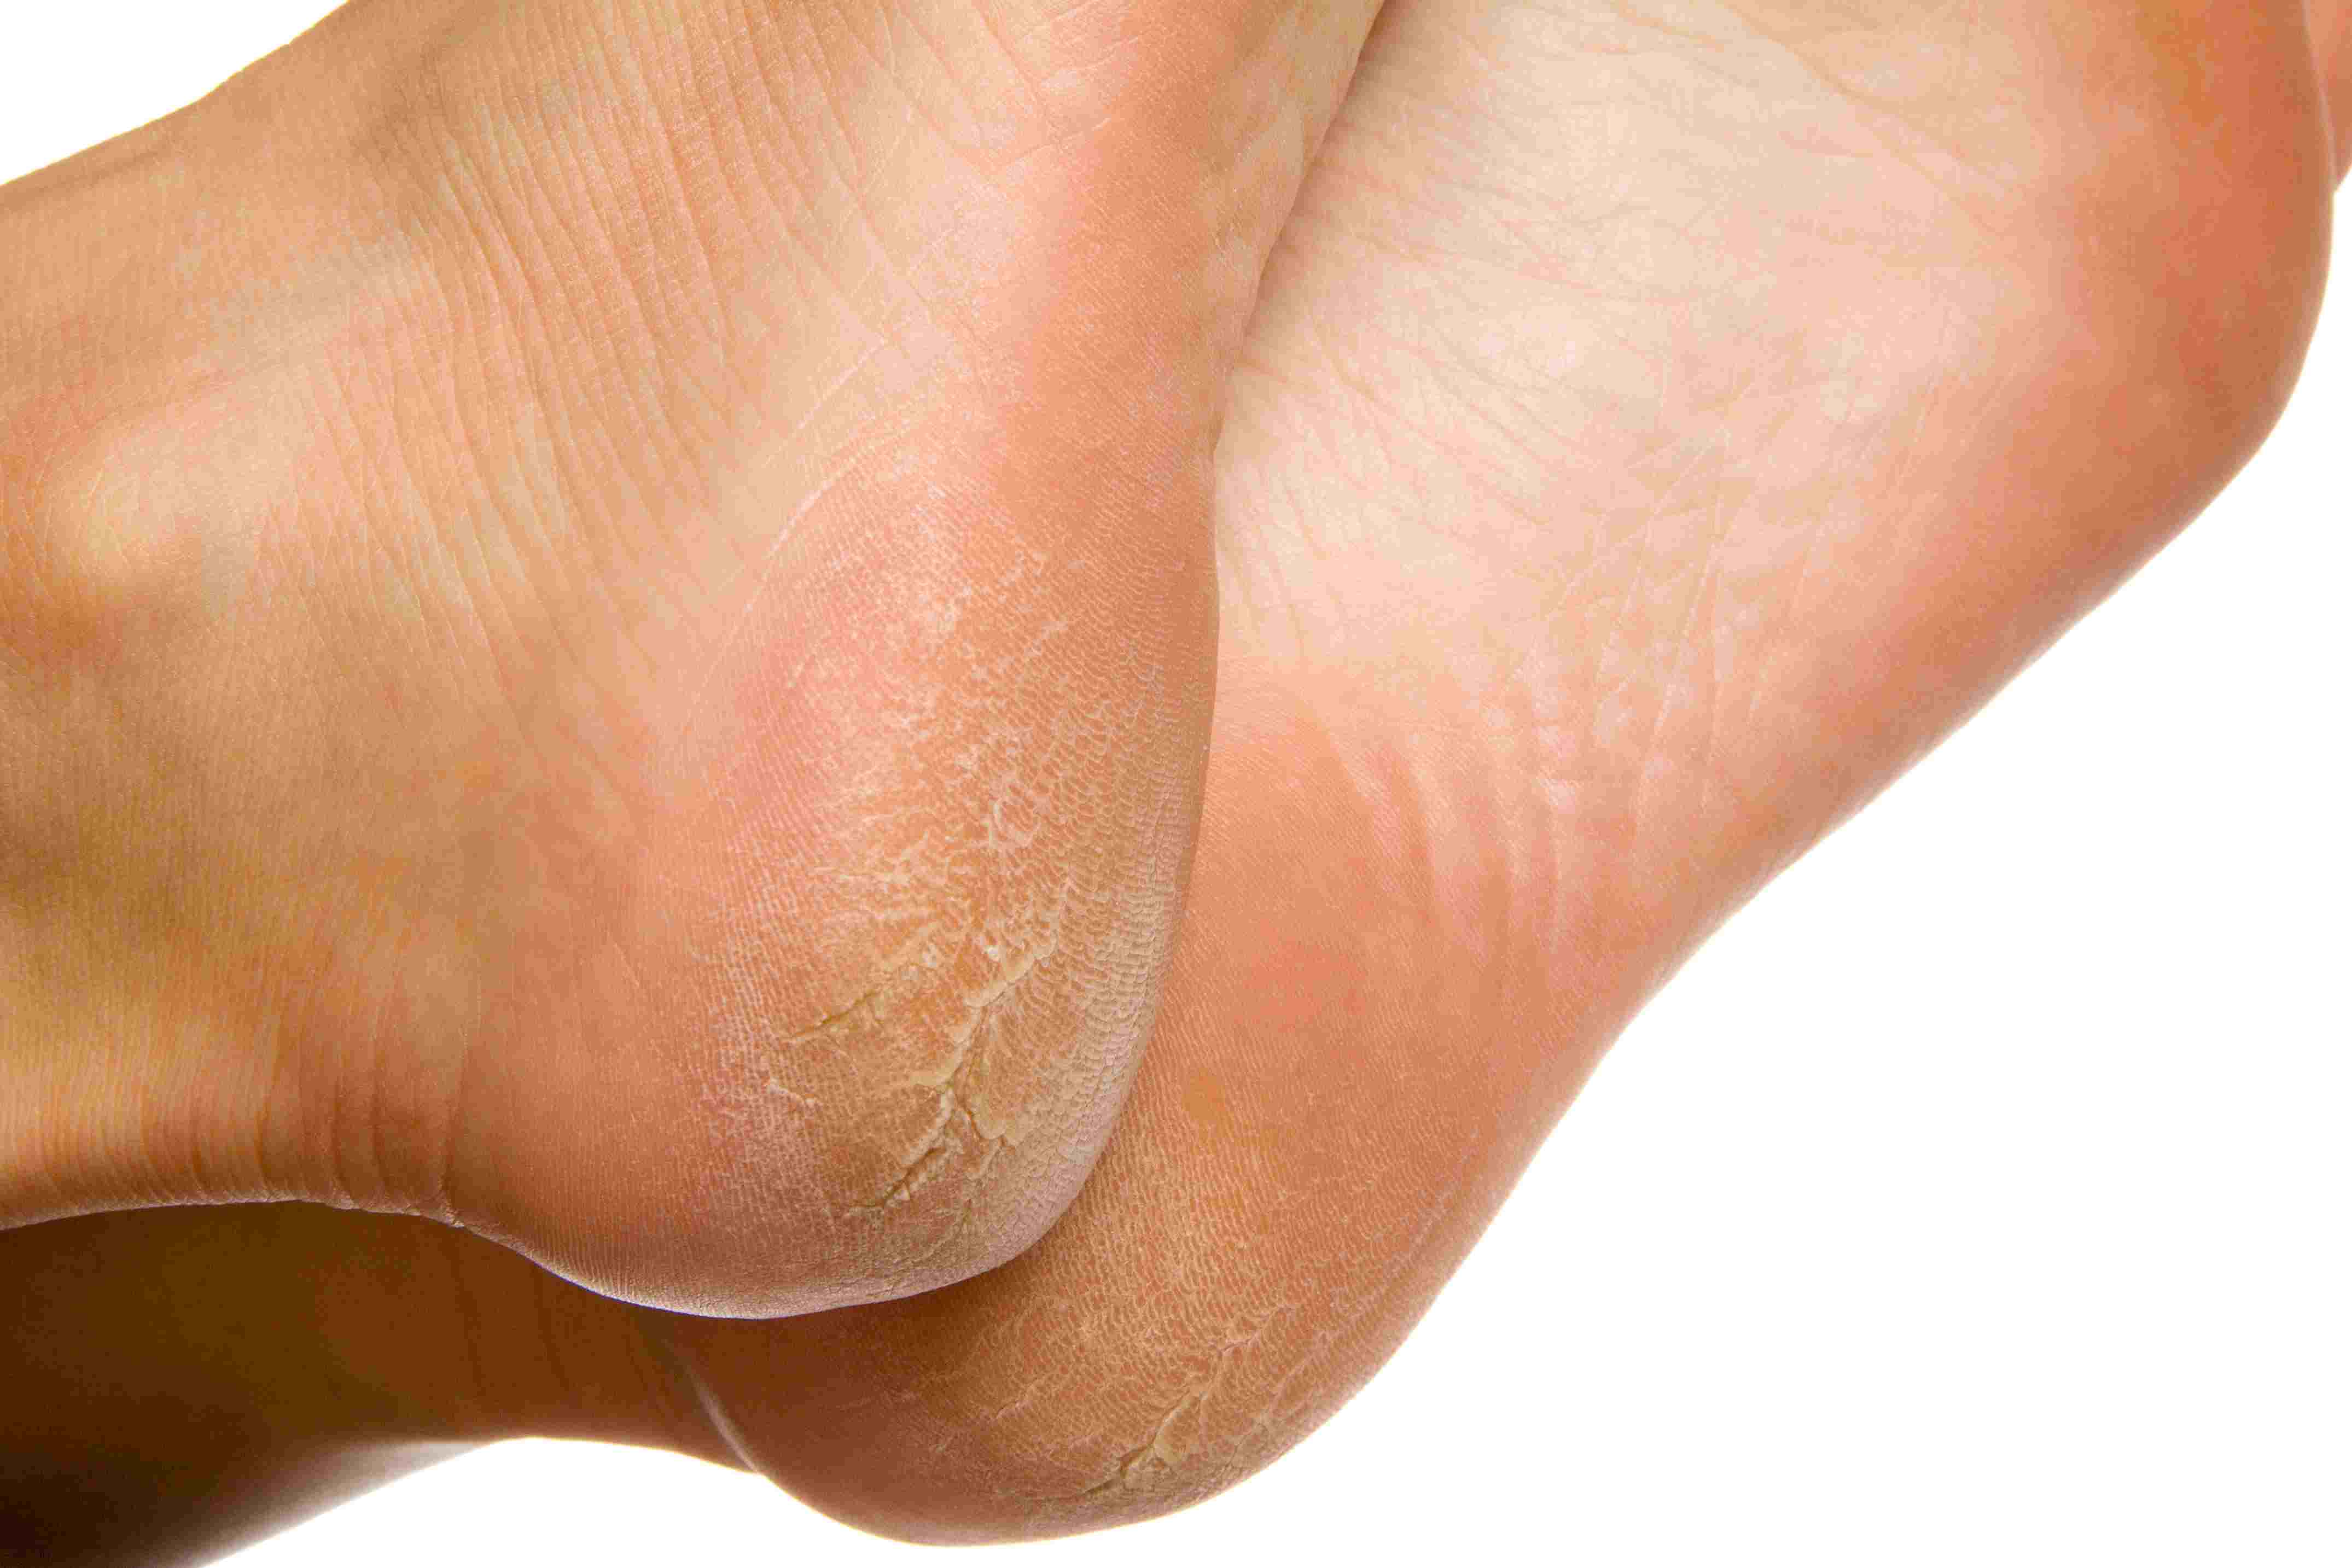 wart on foot not painful)